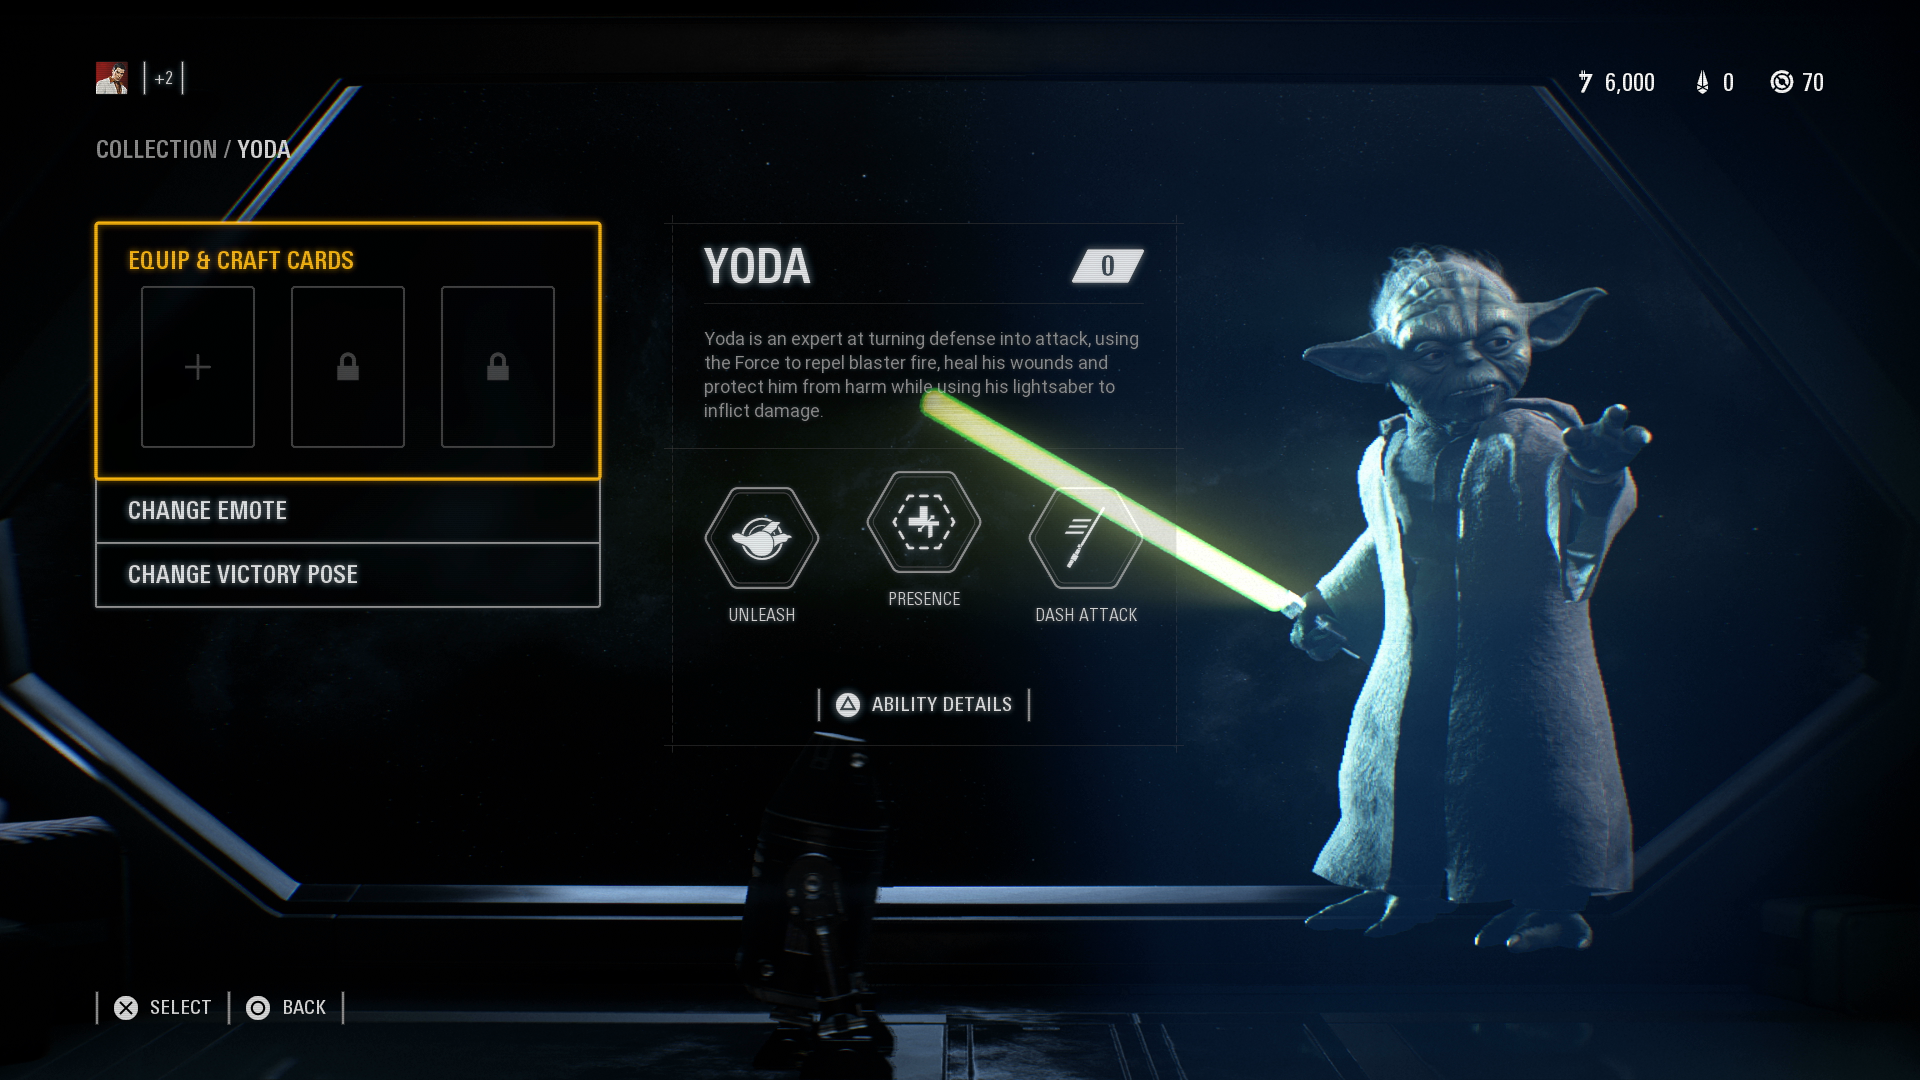 Star Wars Battlefront 2 Heroes and Villains Guide - How to